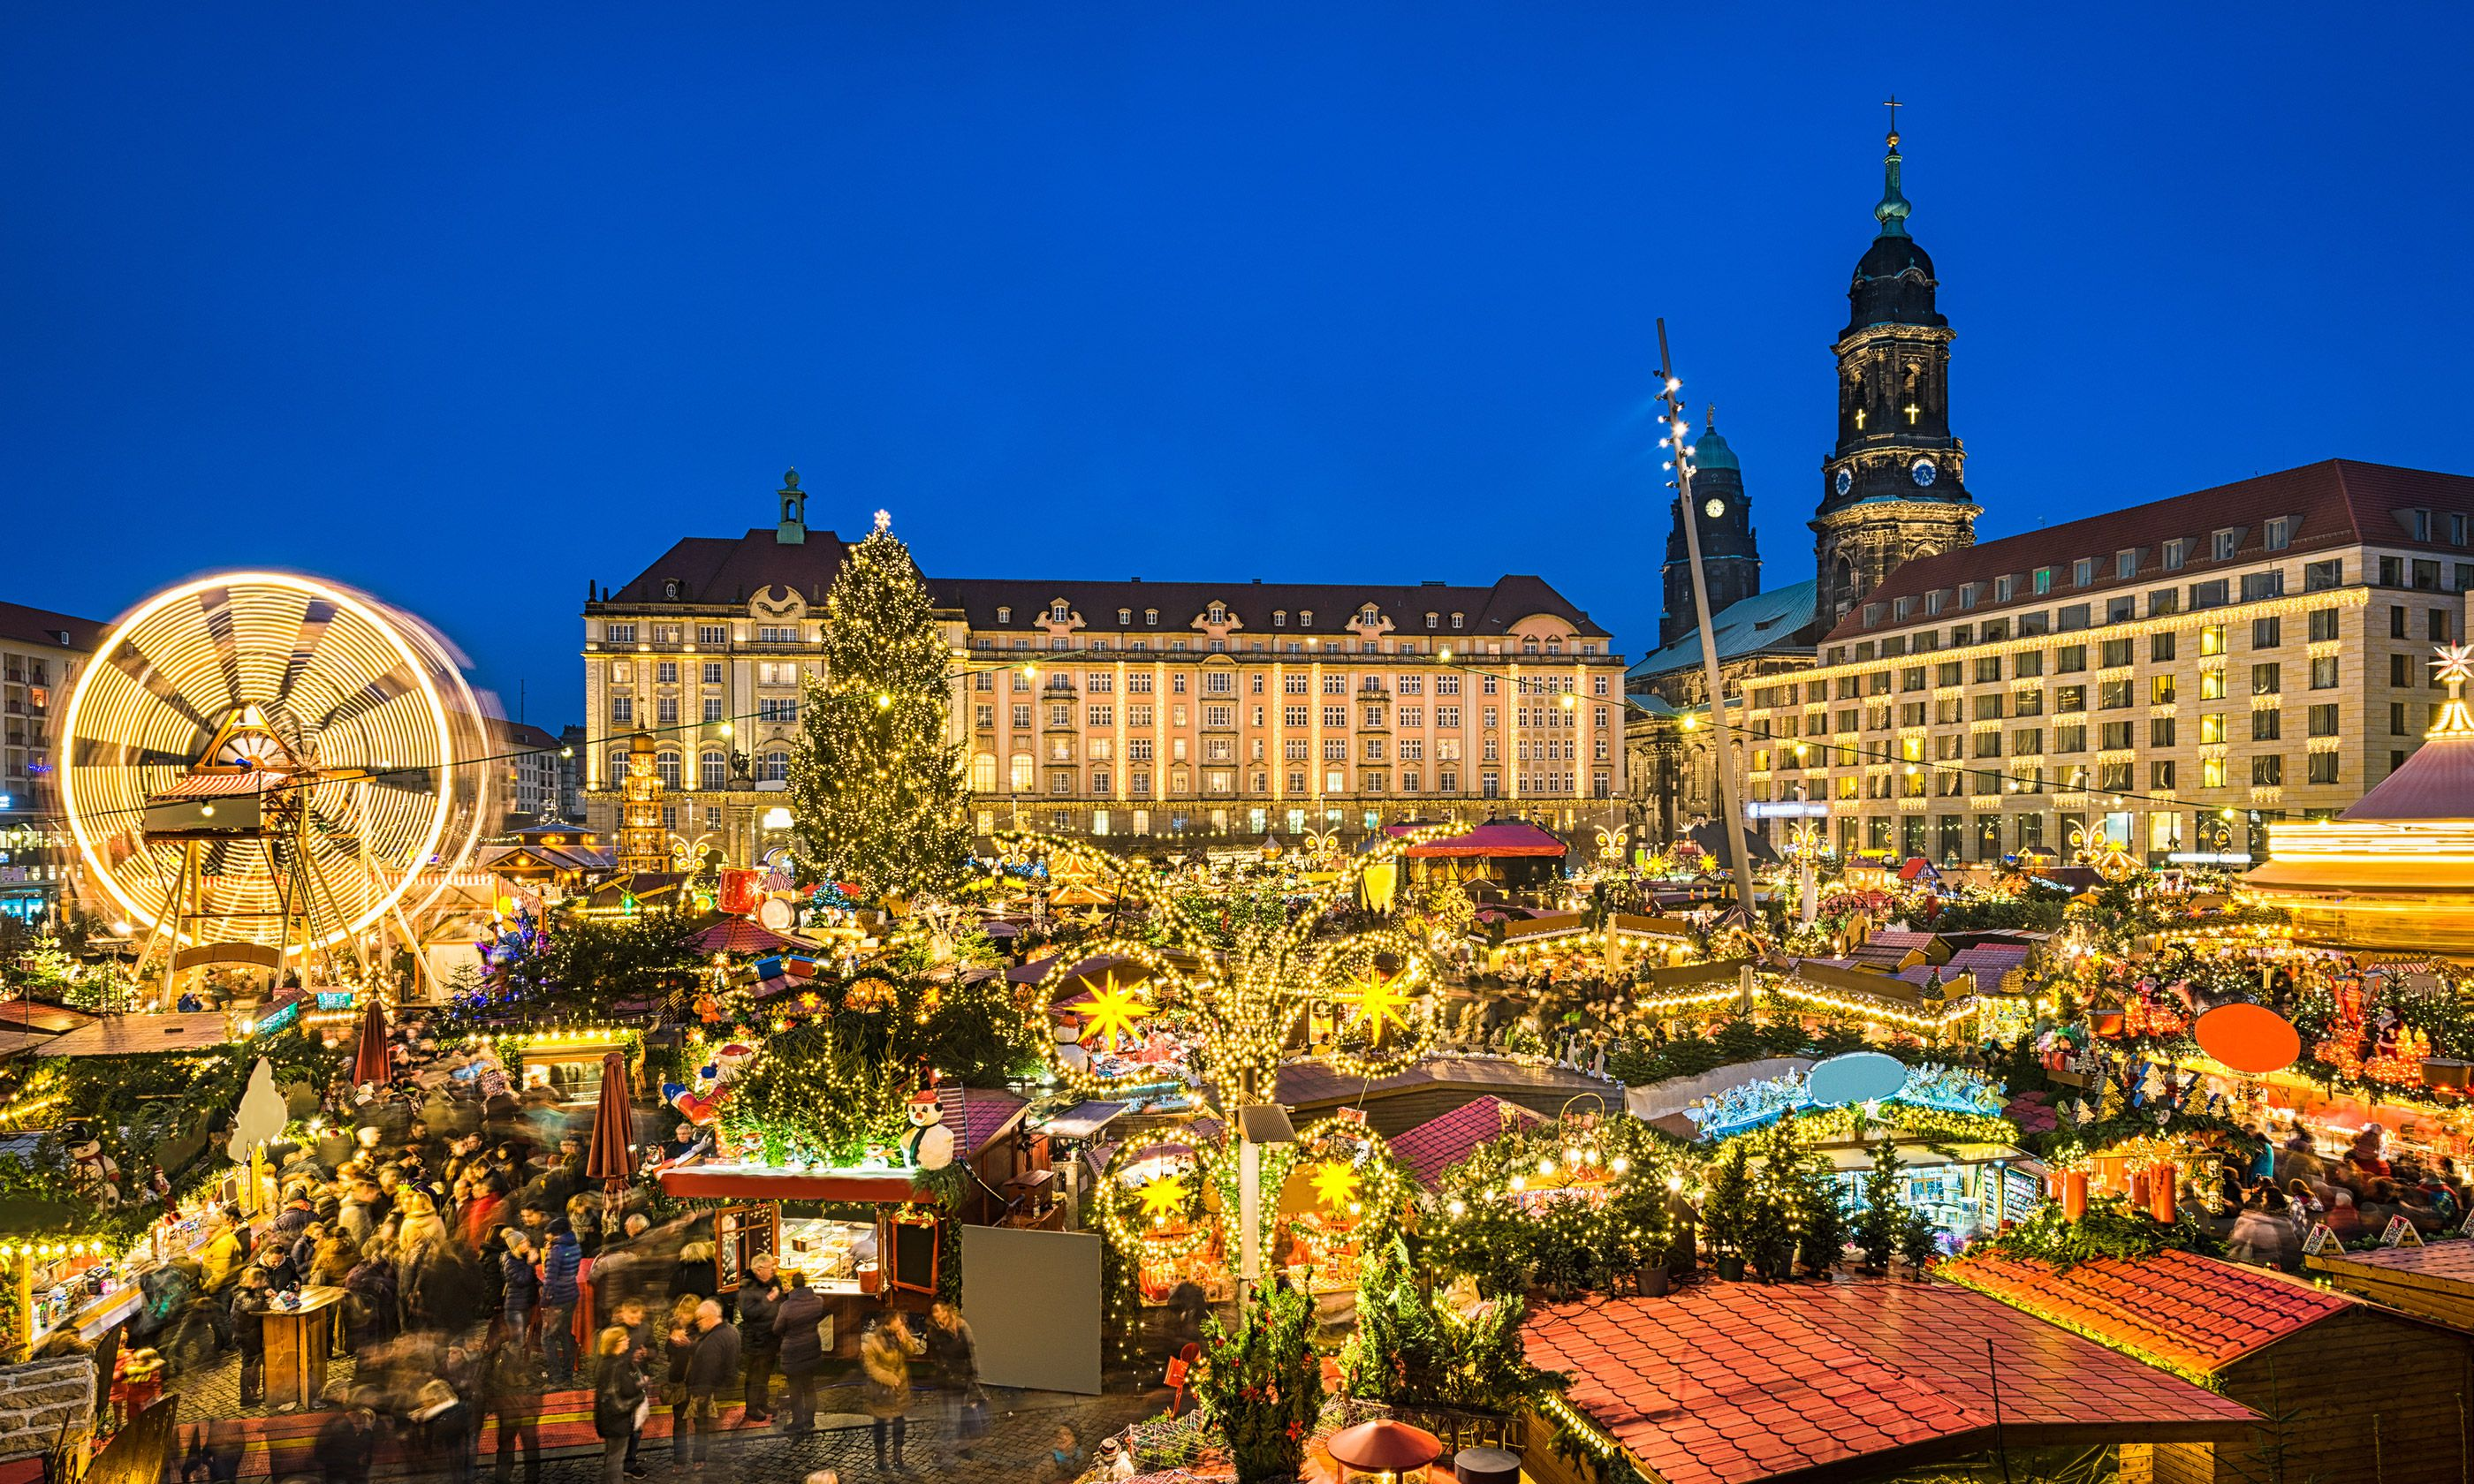 Frohe Weihnachten! Germany's top 10 Christmas markets